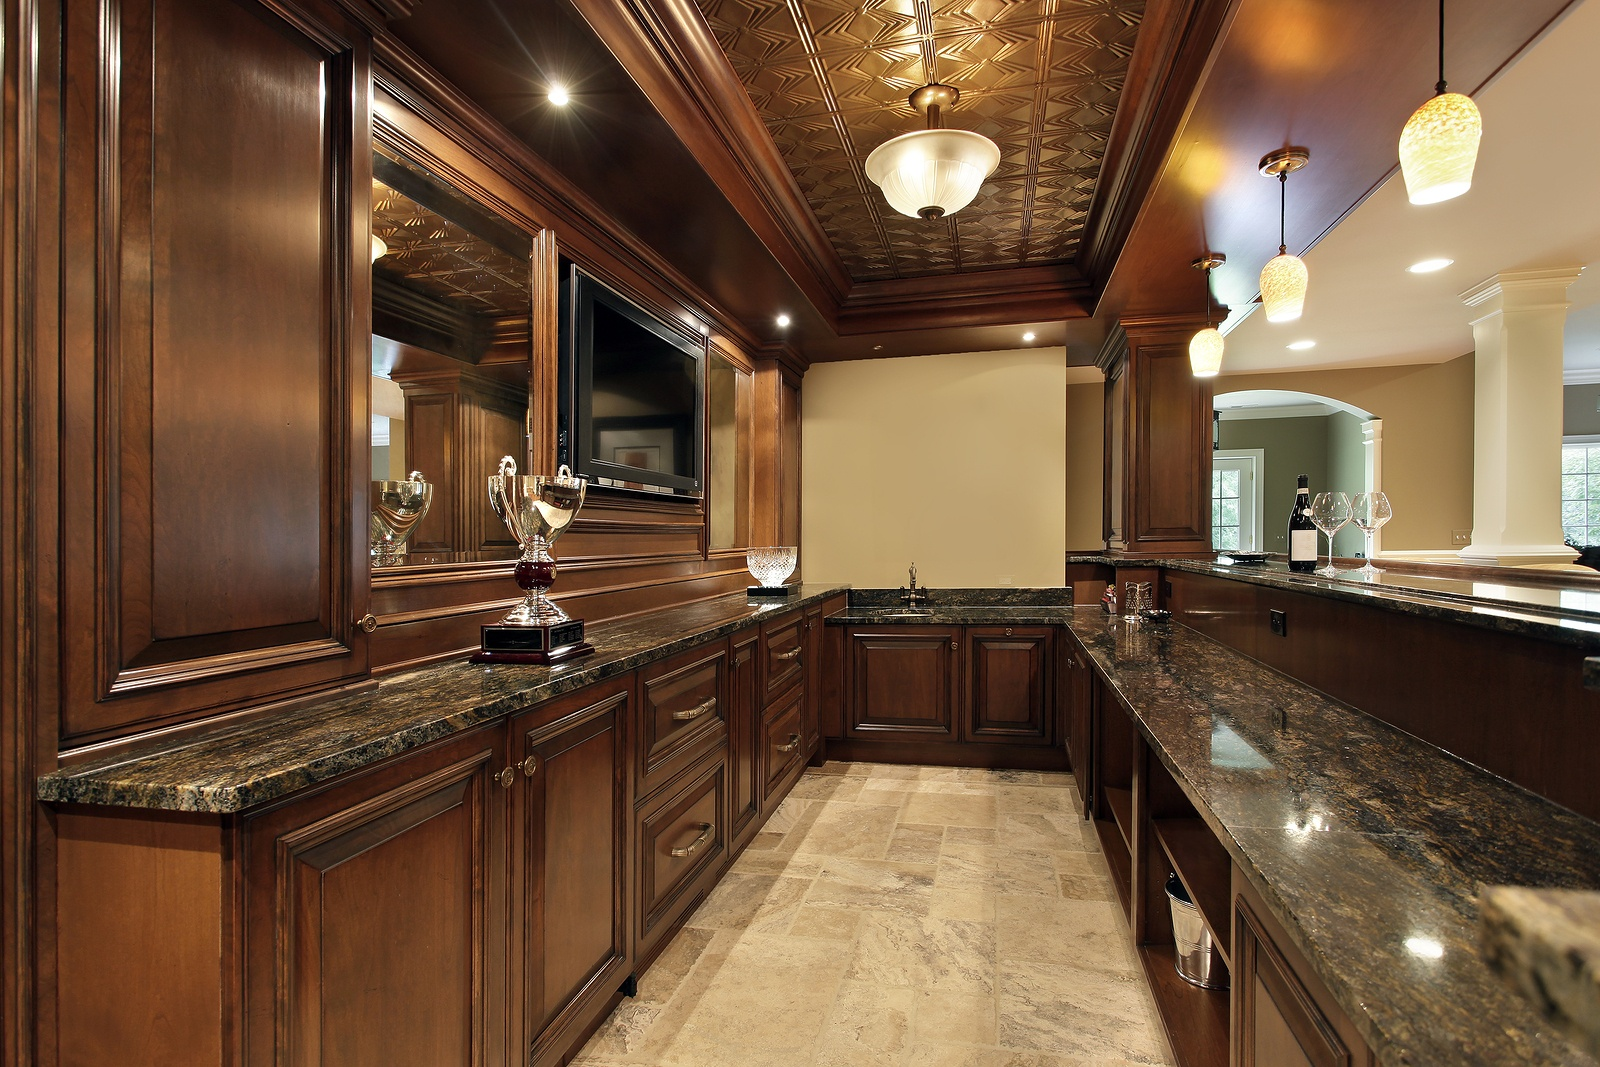 bigstock-Bar-in-basement-of-luxury-home-18131423.jpg